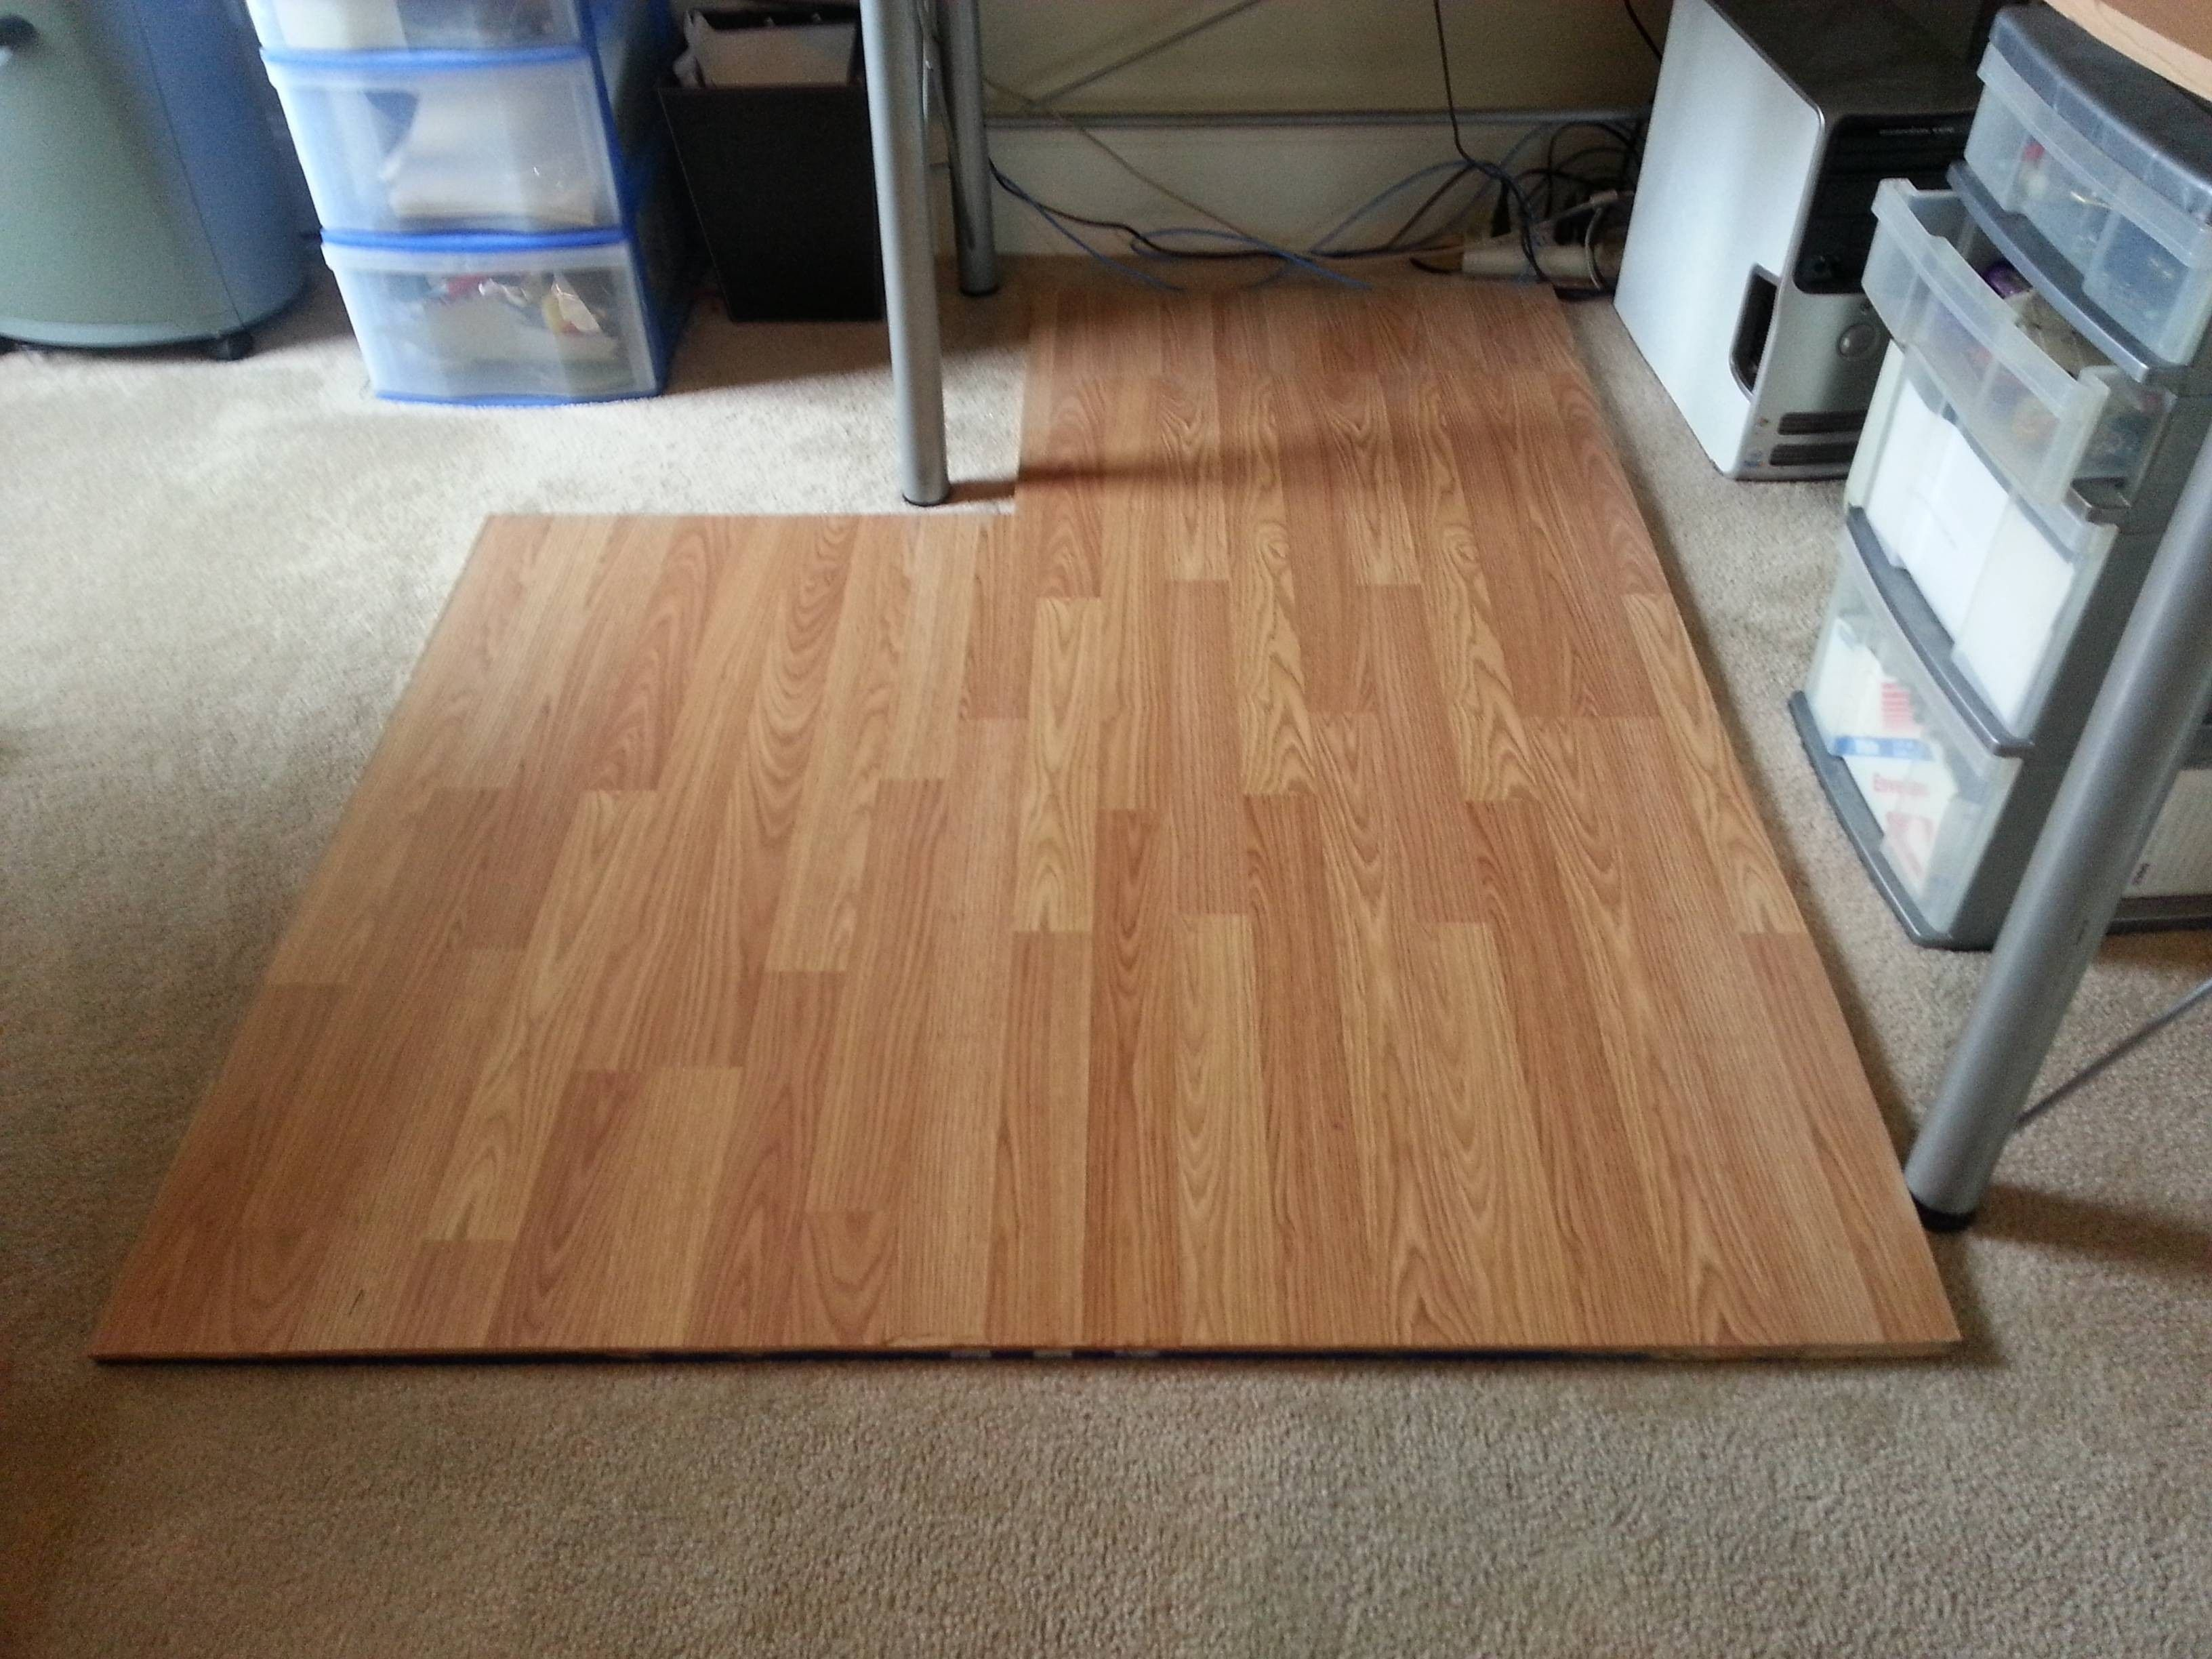 Spectator A Atrage Restrânge Can You, Can You Install Laminate Flooring Over Carpet Padding